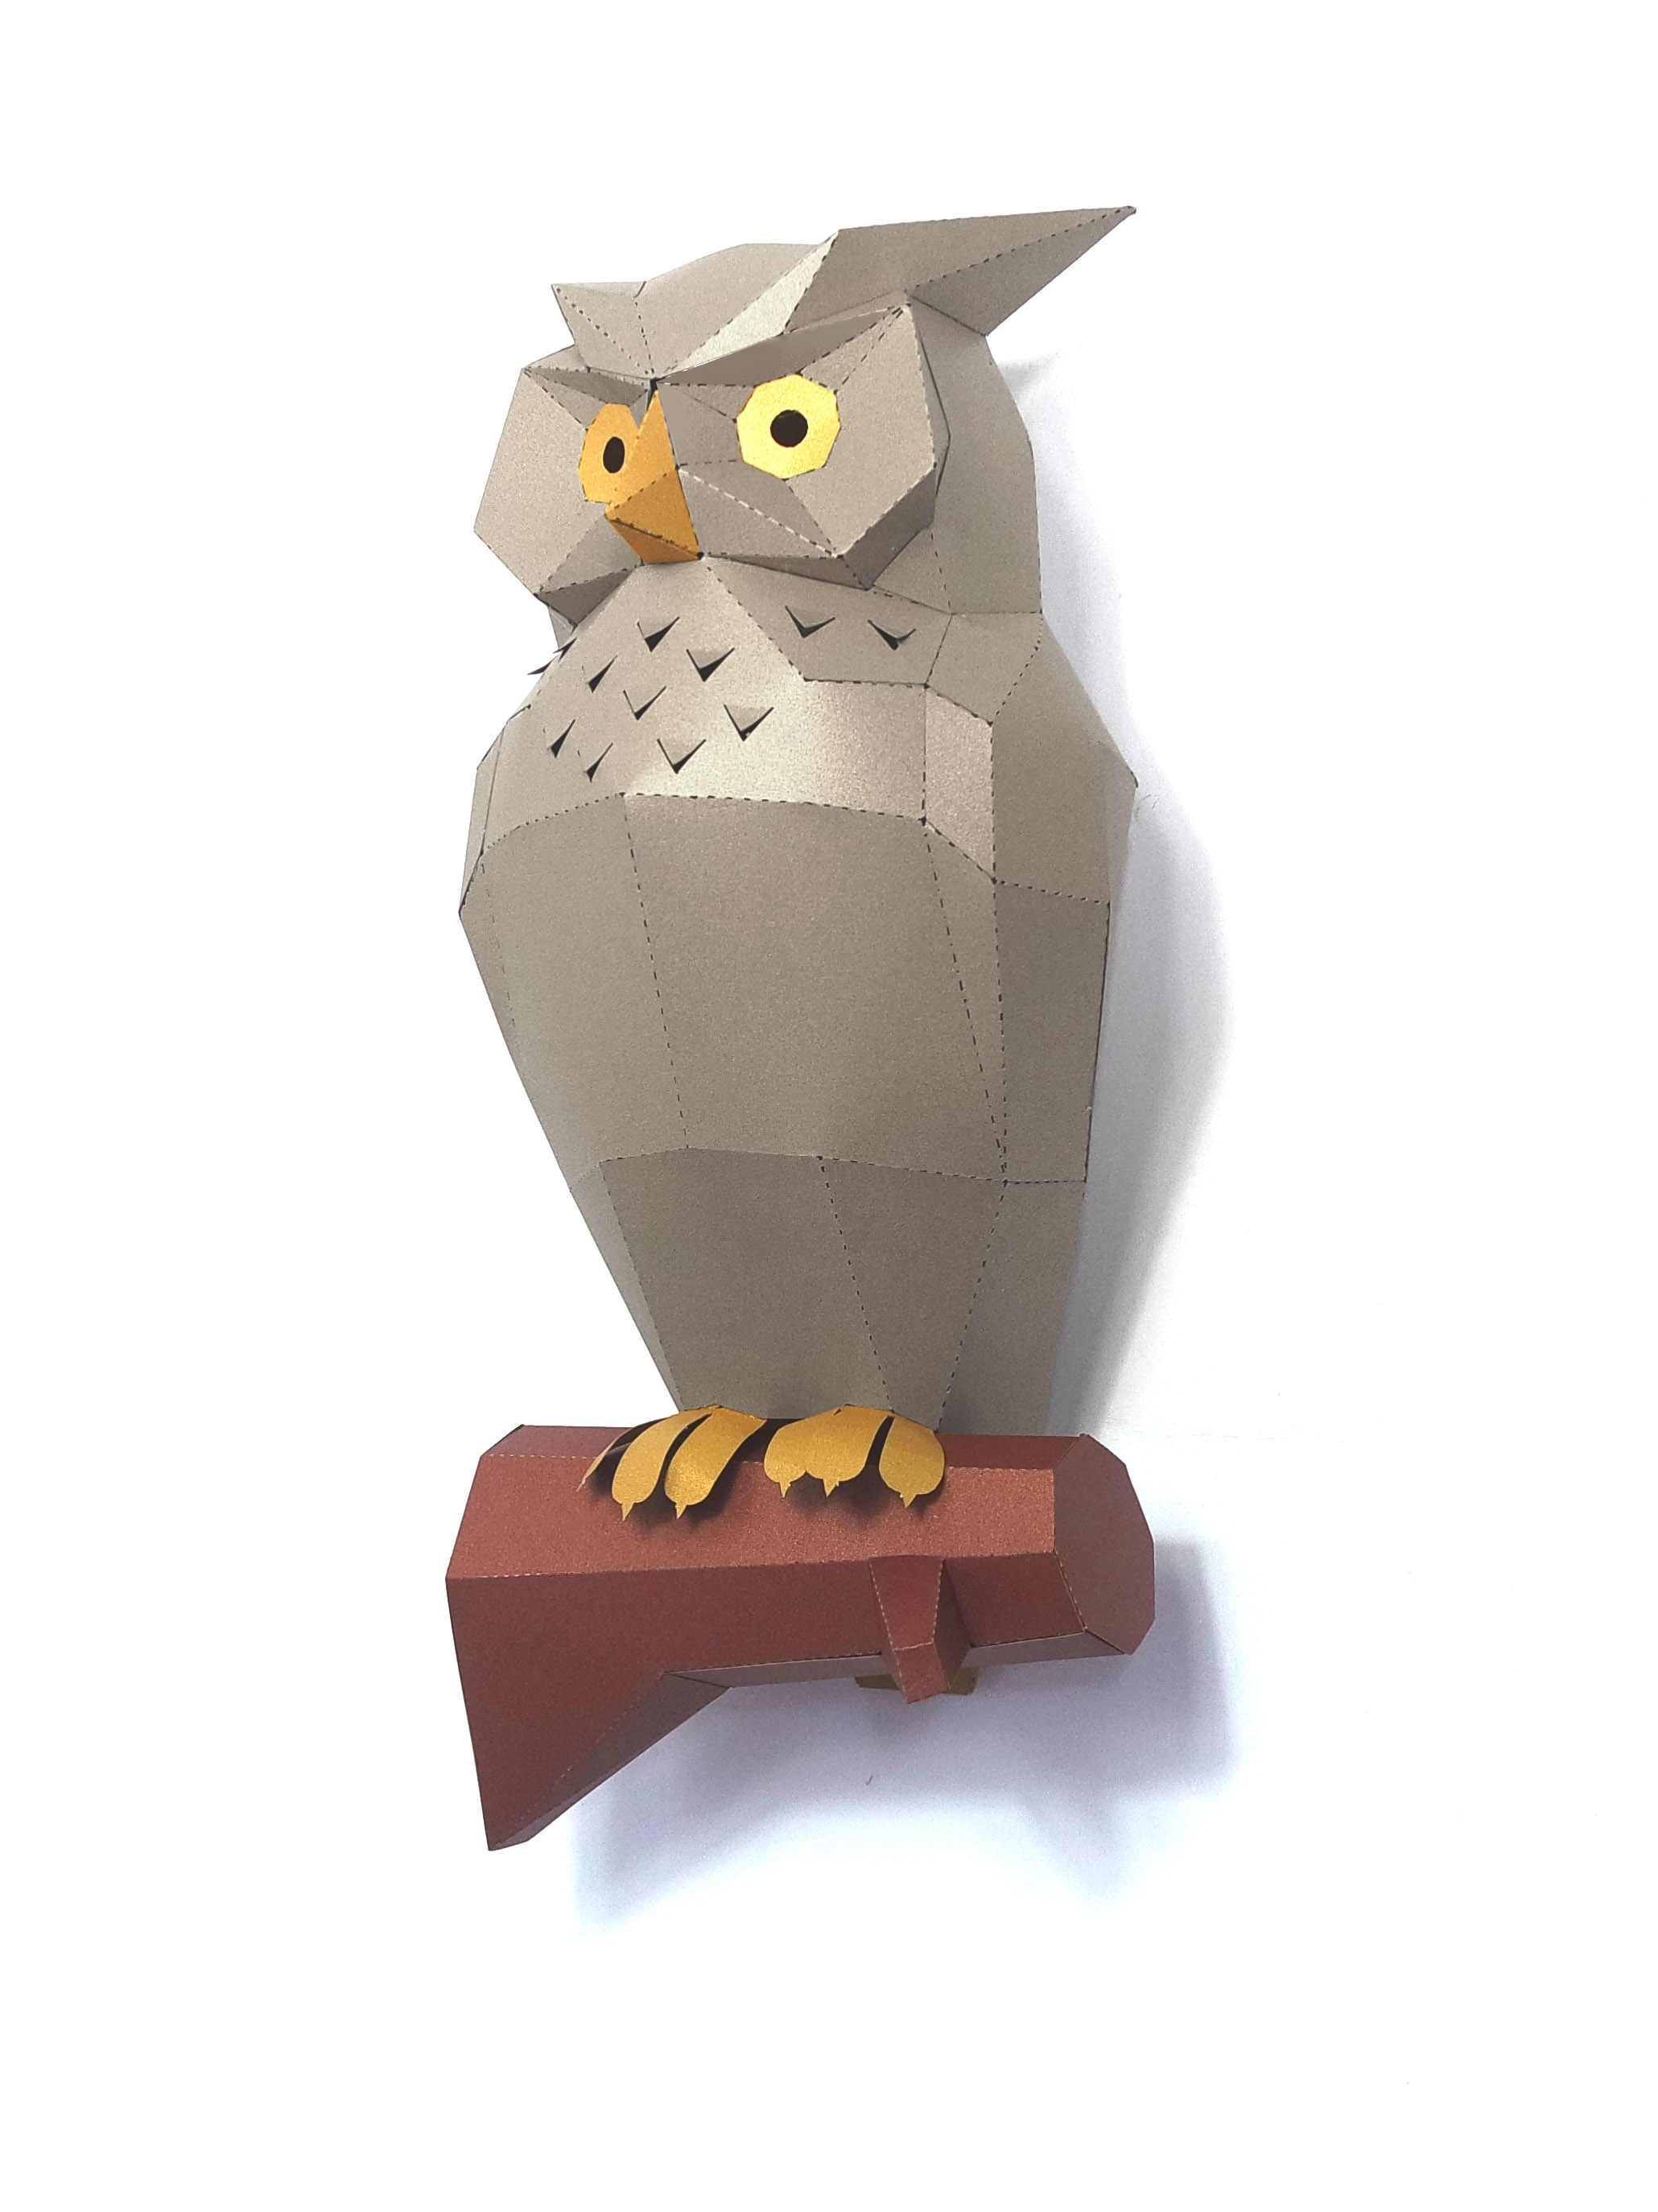 3D Owl Animal Paper Model Wall Art Sculpture Toy Home Decor Living Room Decor DIY Paper Craft Model Party Gift